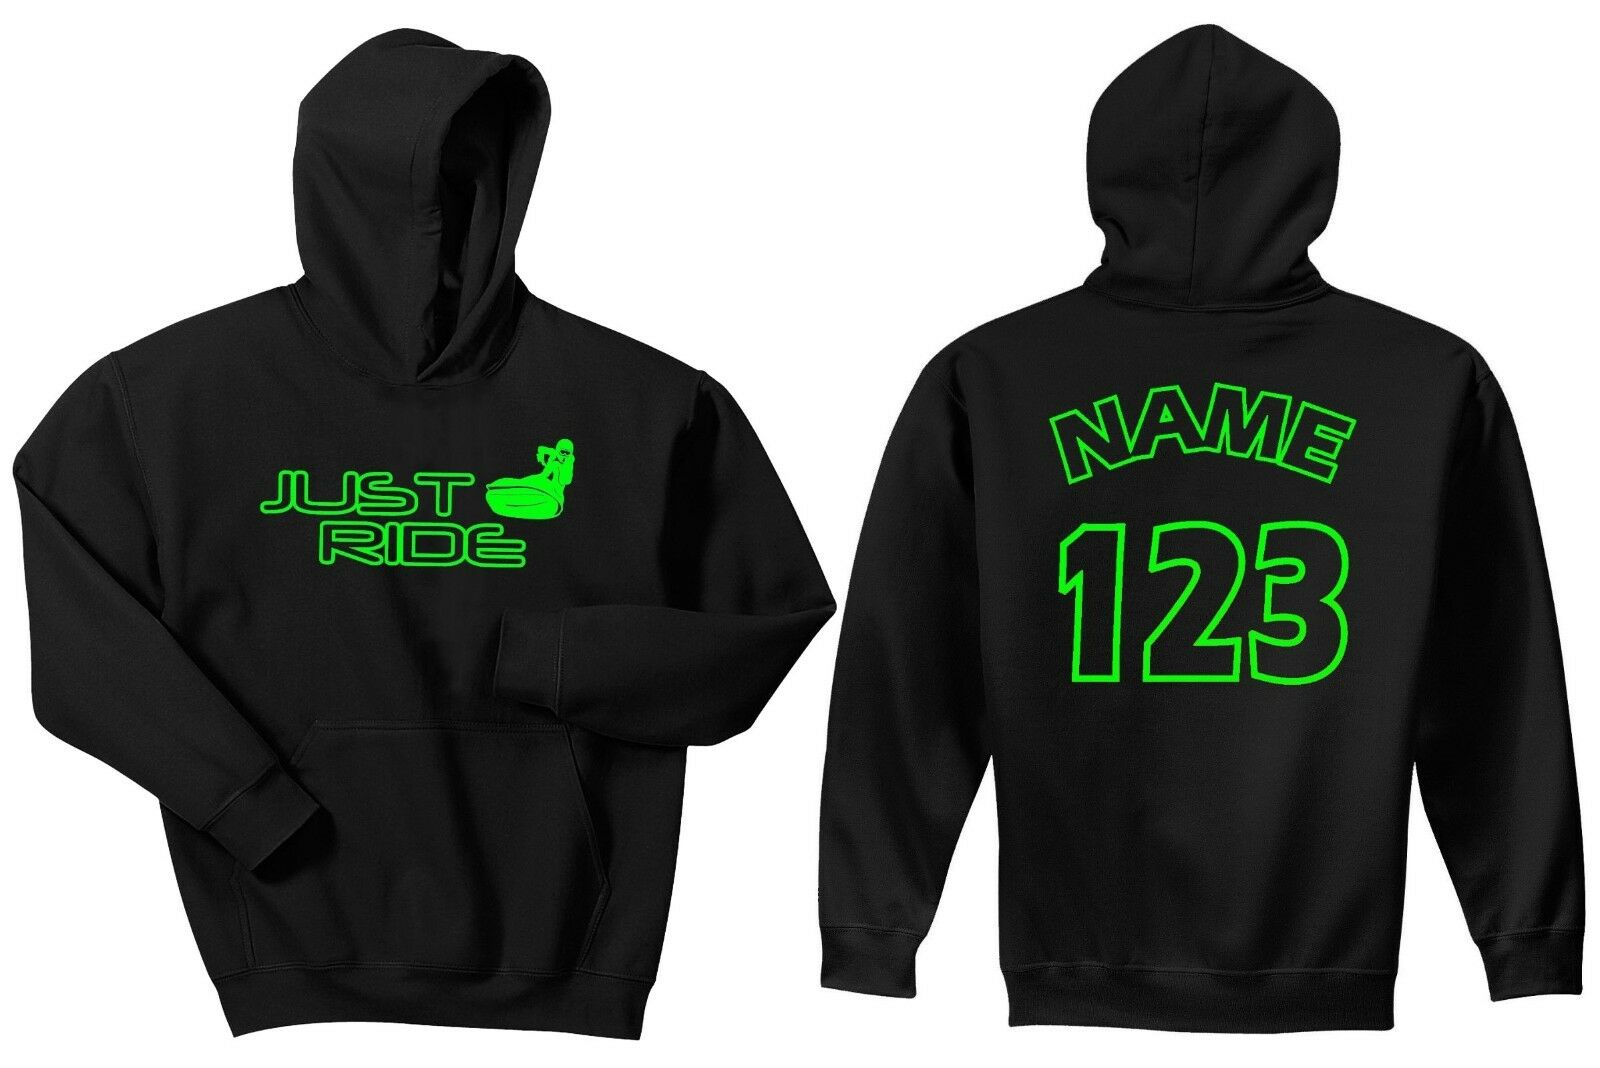 JUST RIDE STAND UP JET SKI PWC SLED CUSTOM RACE NUMBER HOODIE SWEAT SHIRT JUMPER